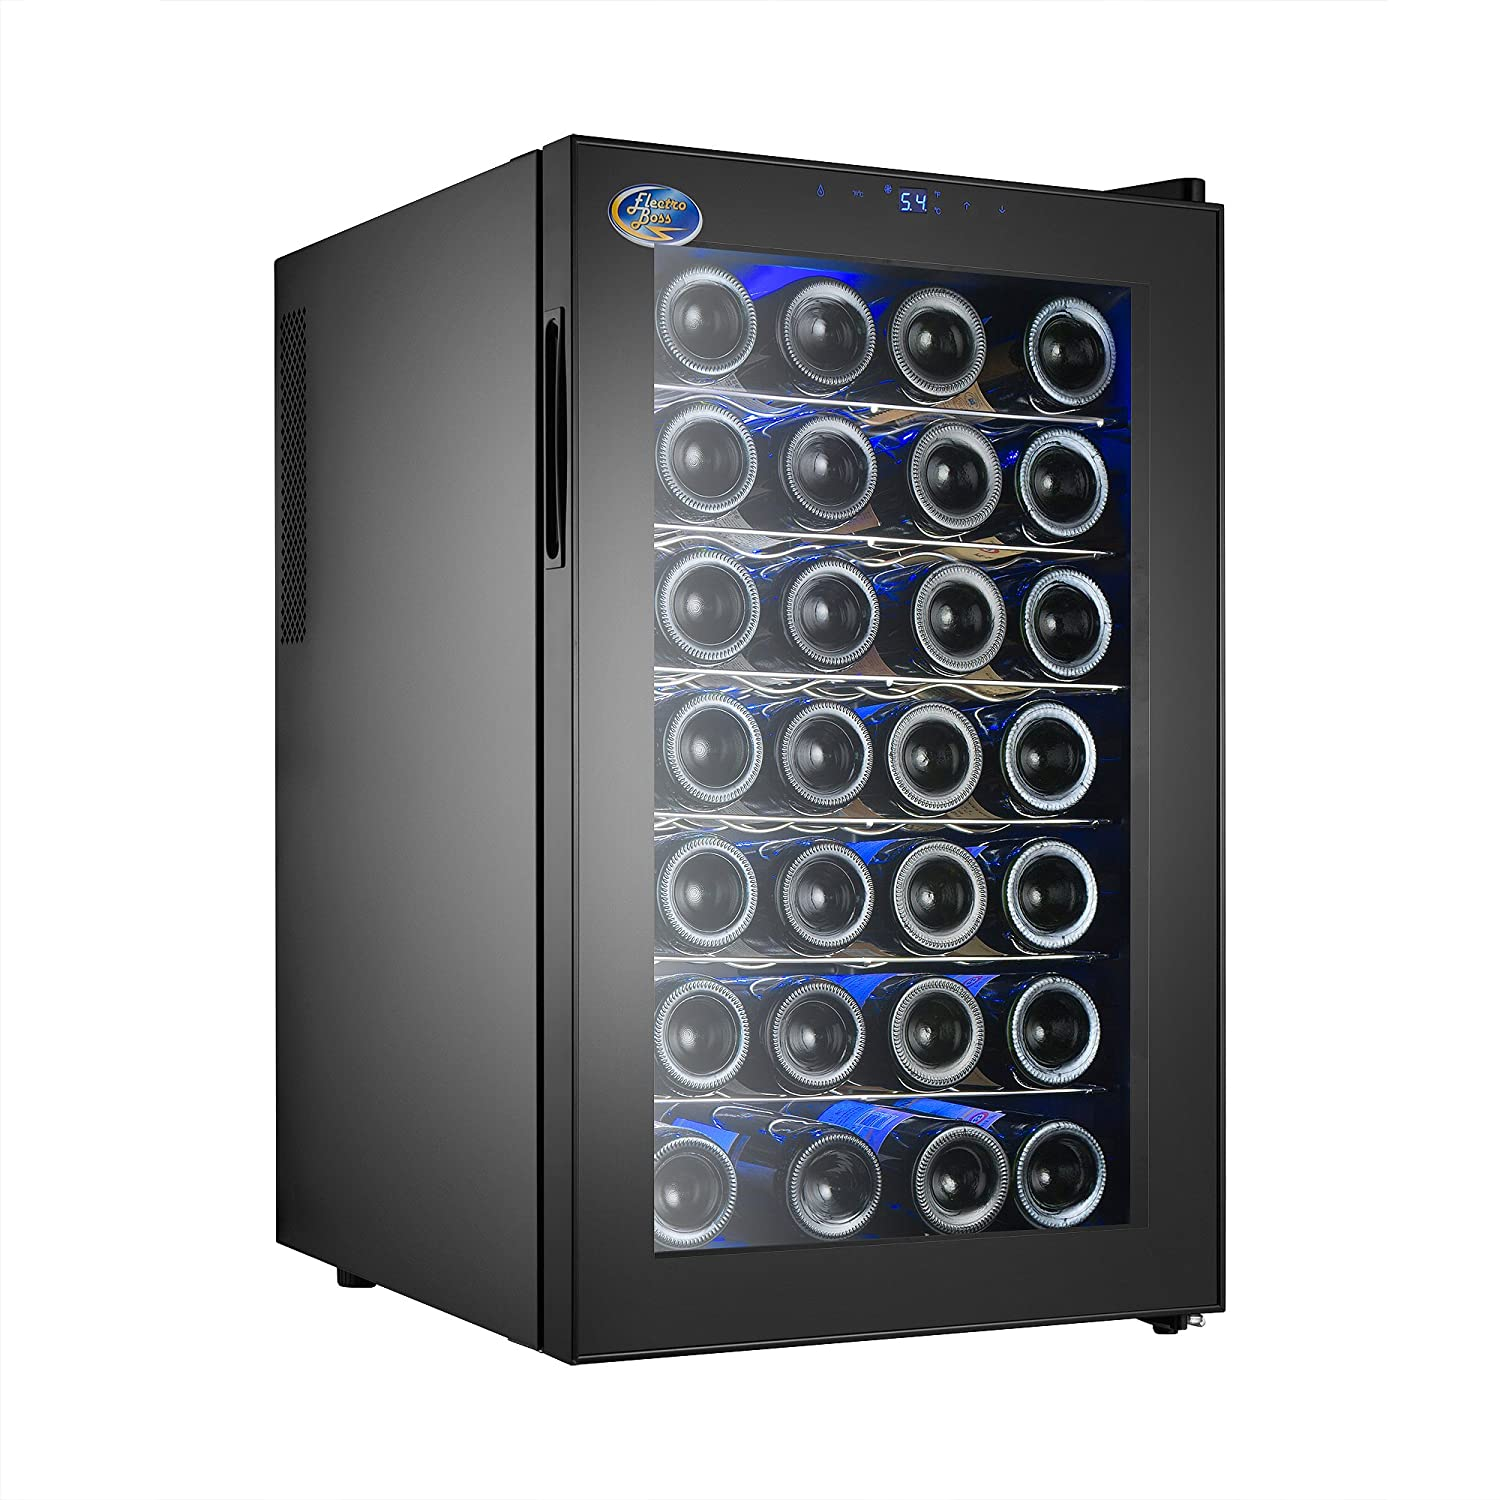 Electro Boss 5325 Wine Cooler Black Refridgerator, 28 Bottles 5325 Wine Cooler 28 Black